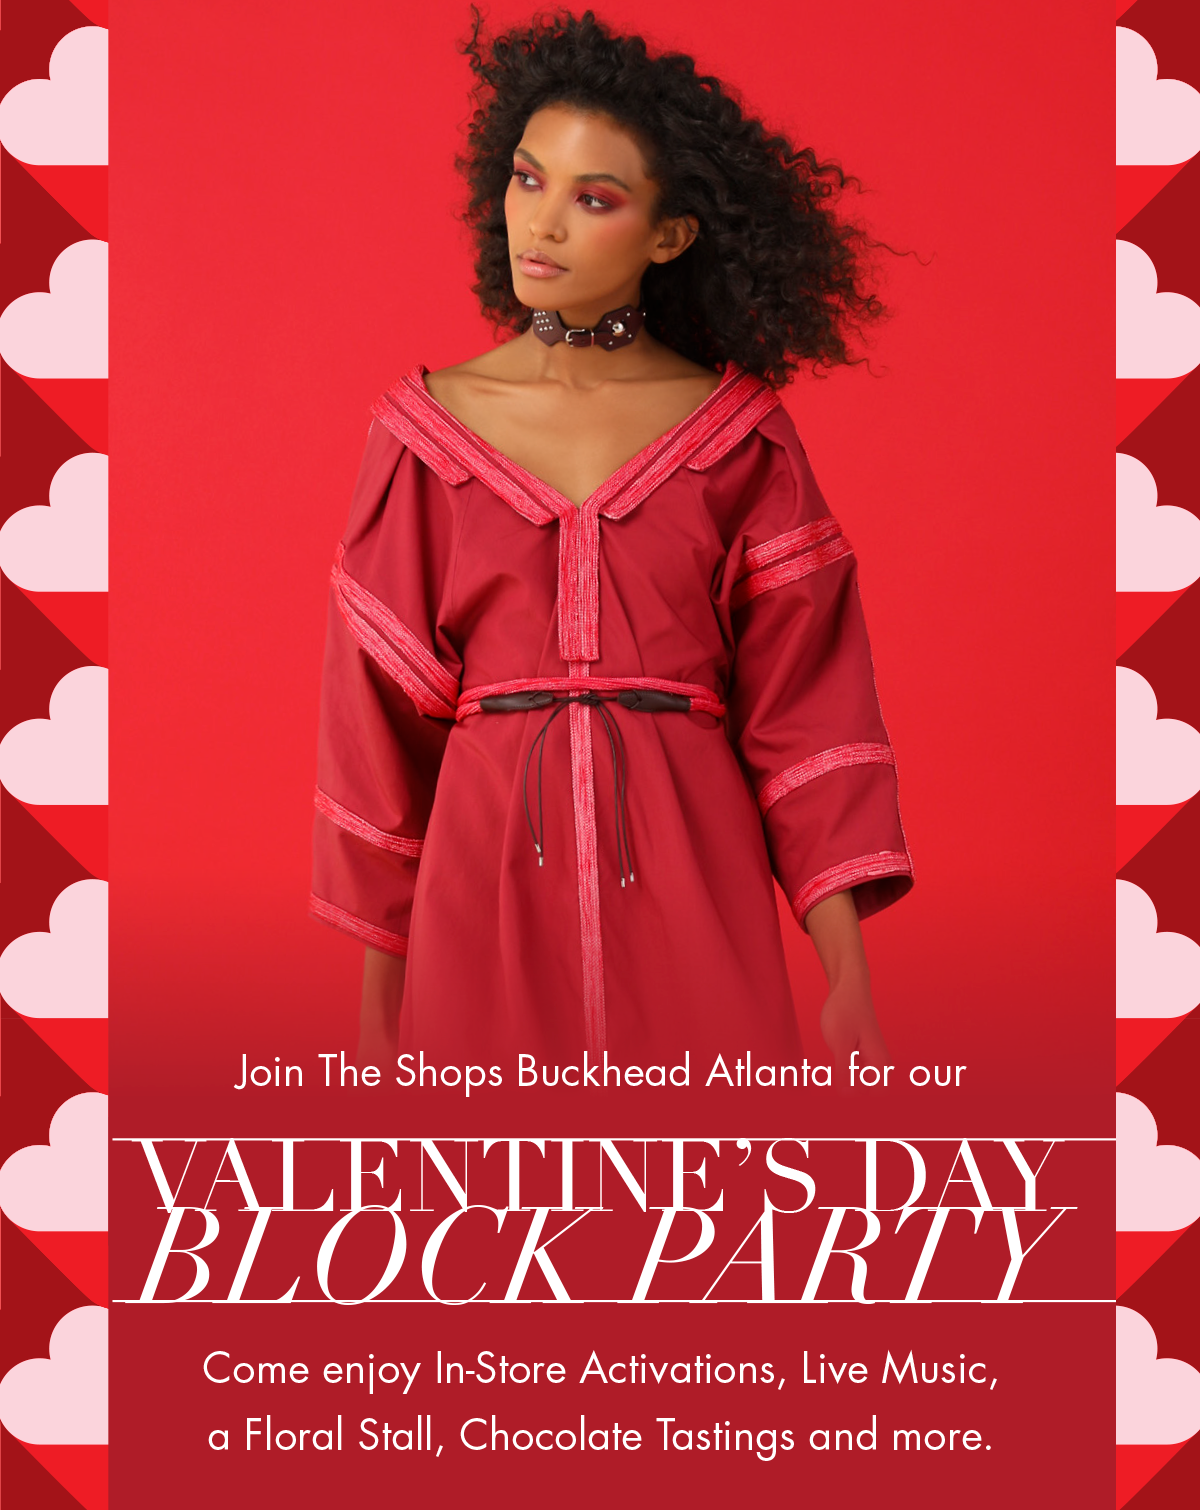 Vdayblockparty.png